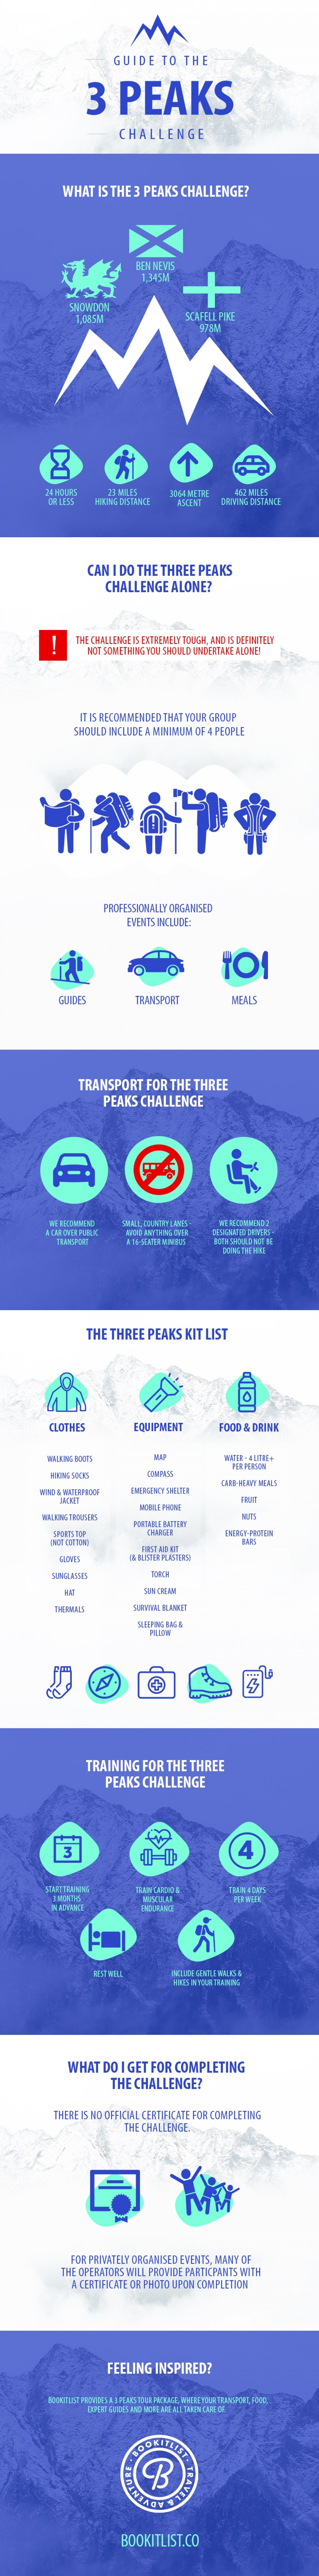 Guide to the 3 Peaks Challenge Infographic